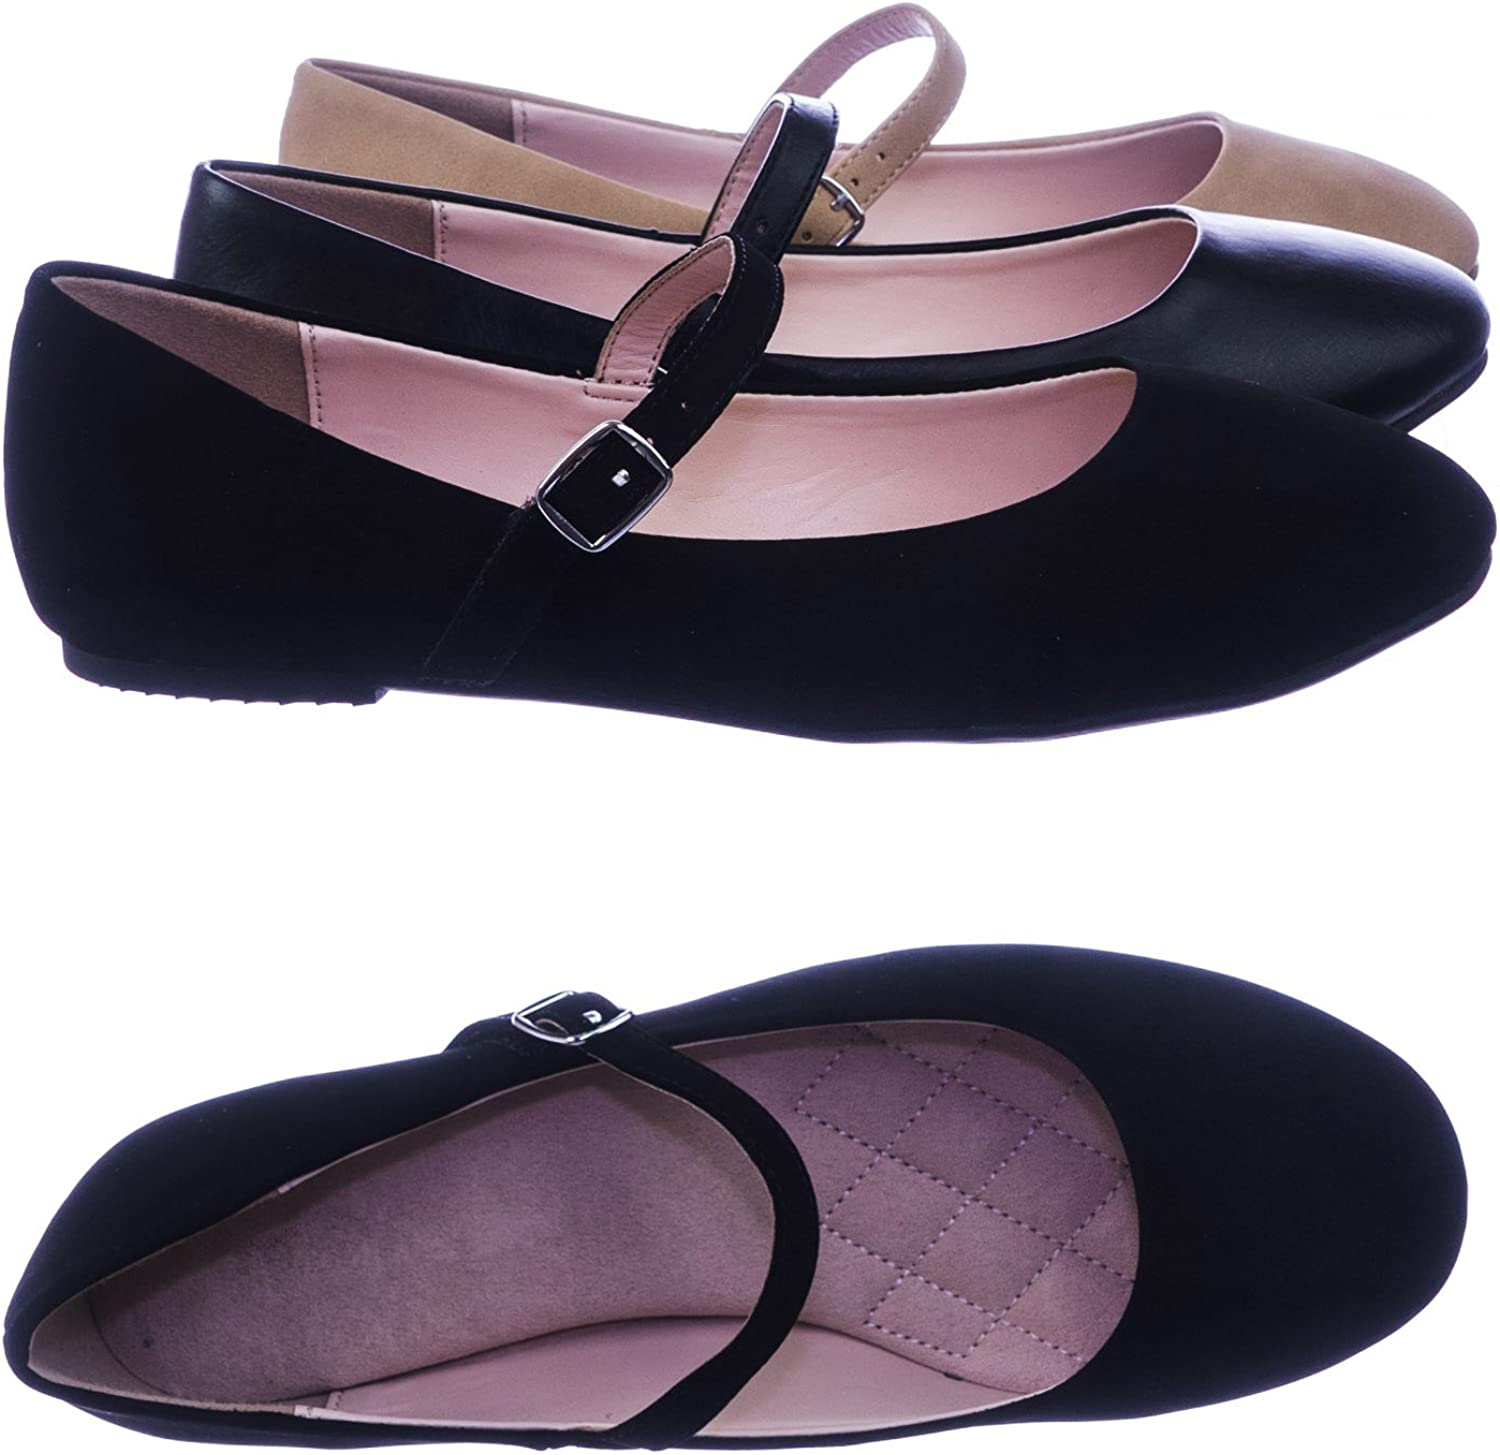 City Classified Women Comfortable Padded Mary-Jane Round Toe Ballet Ballarina Flats